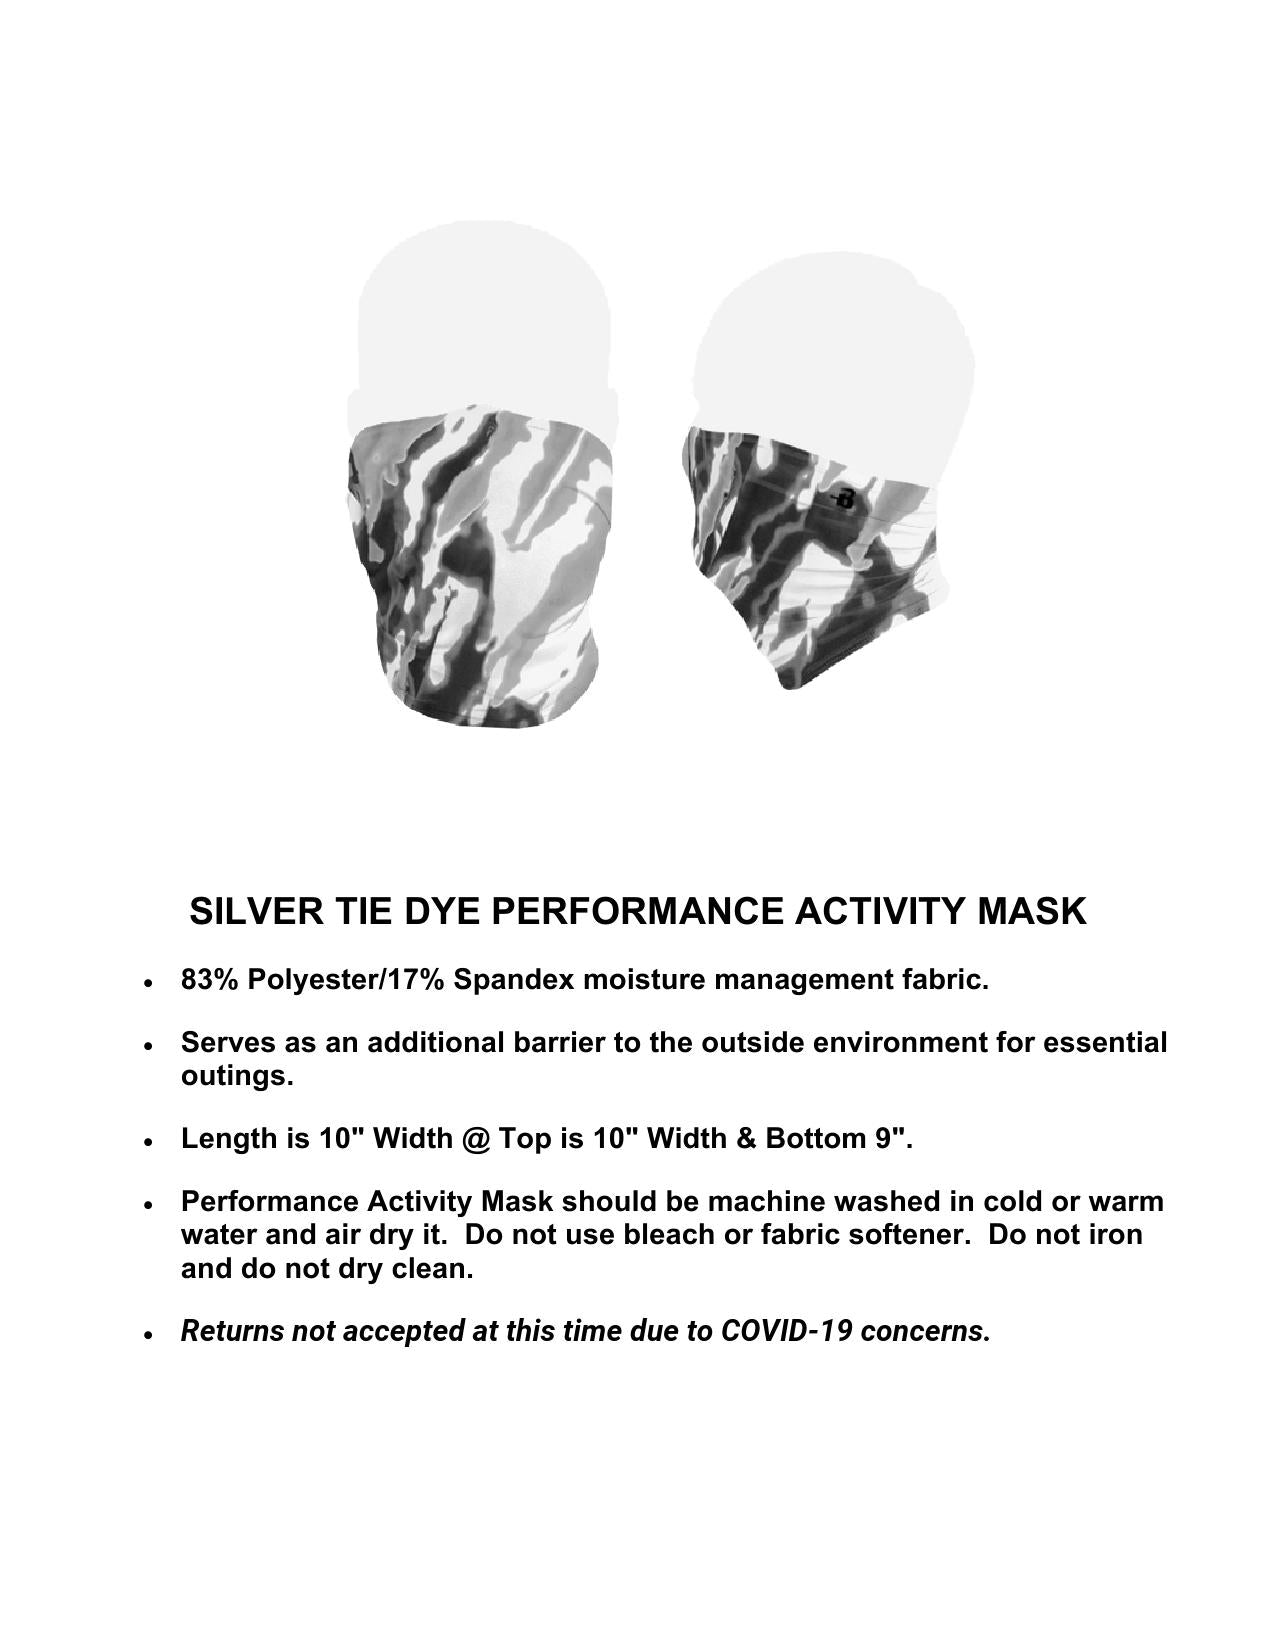 SILVER TIE DYE PERFORMANCE ACTIVITY MASK (OSFM)